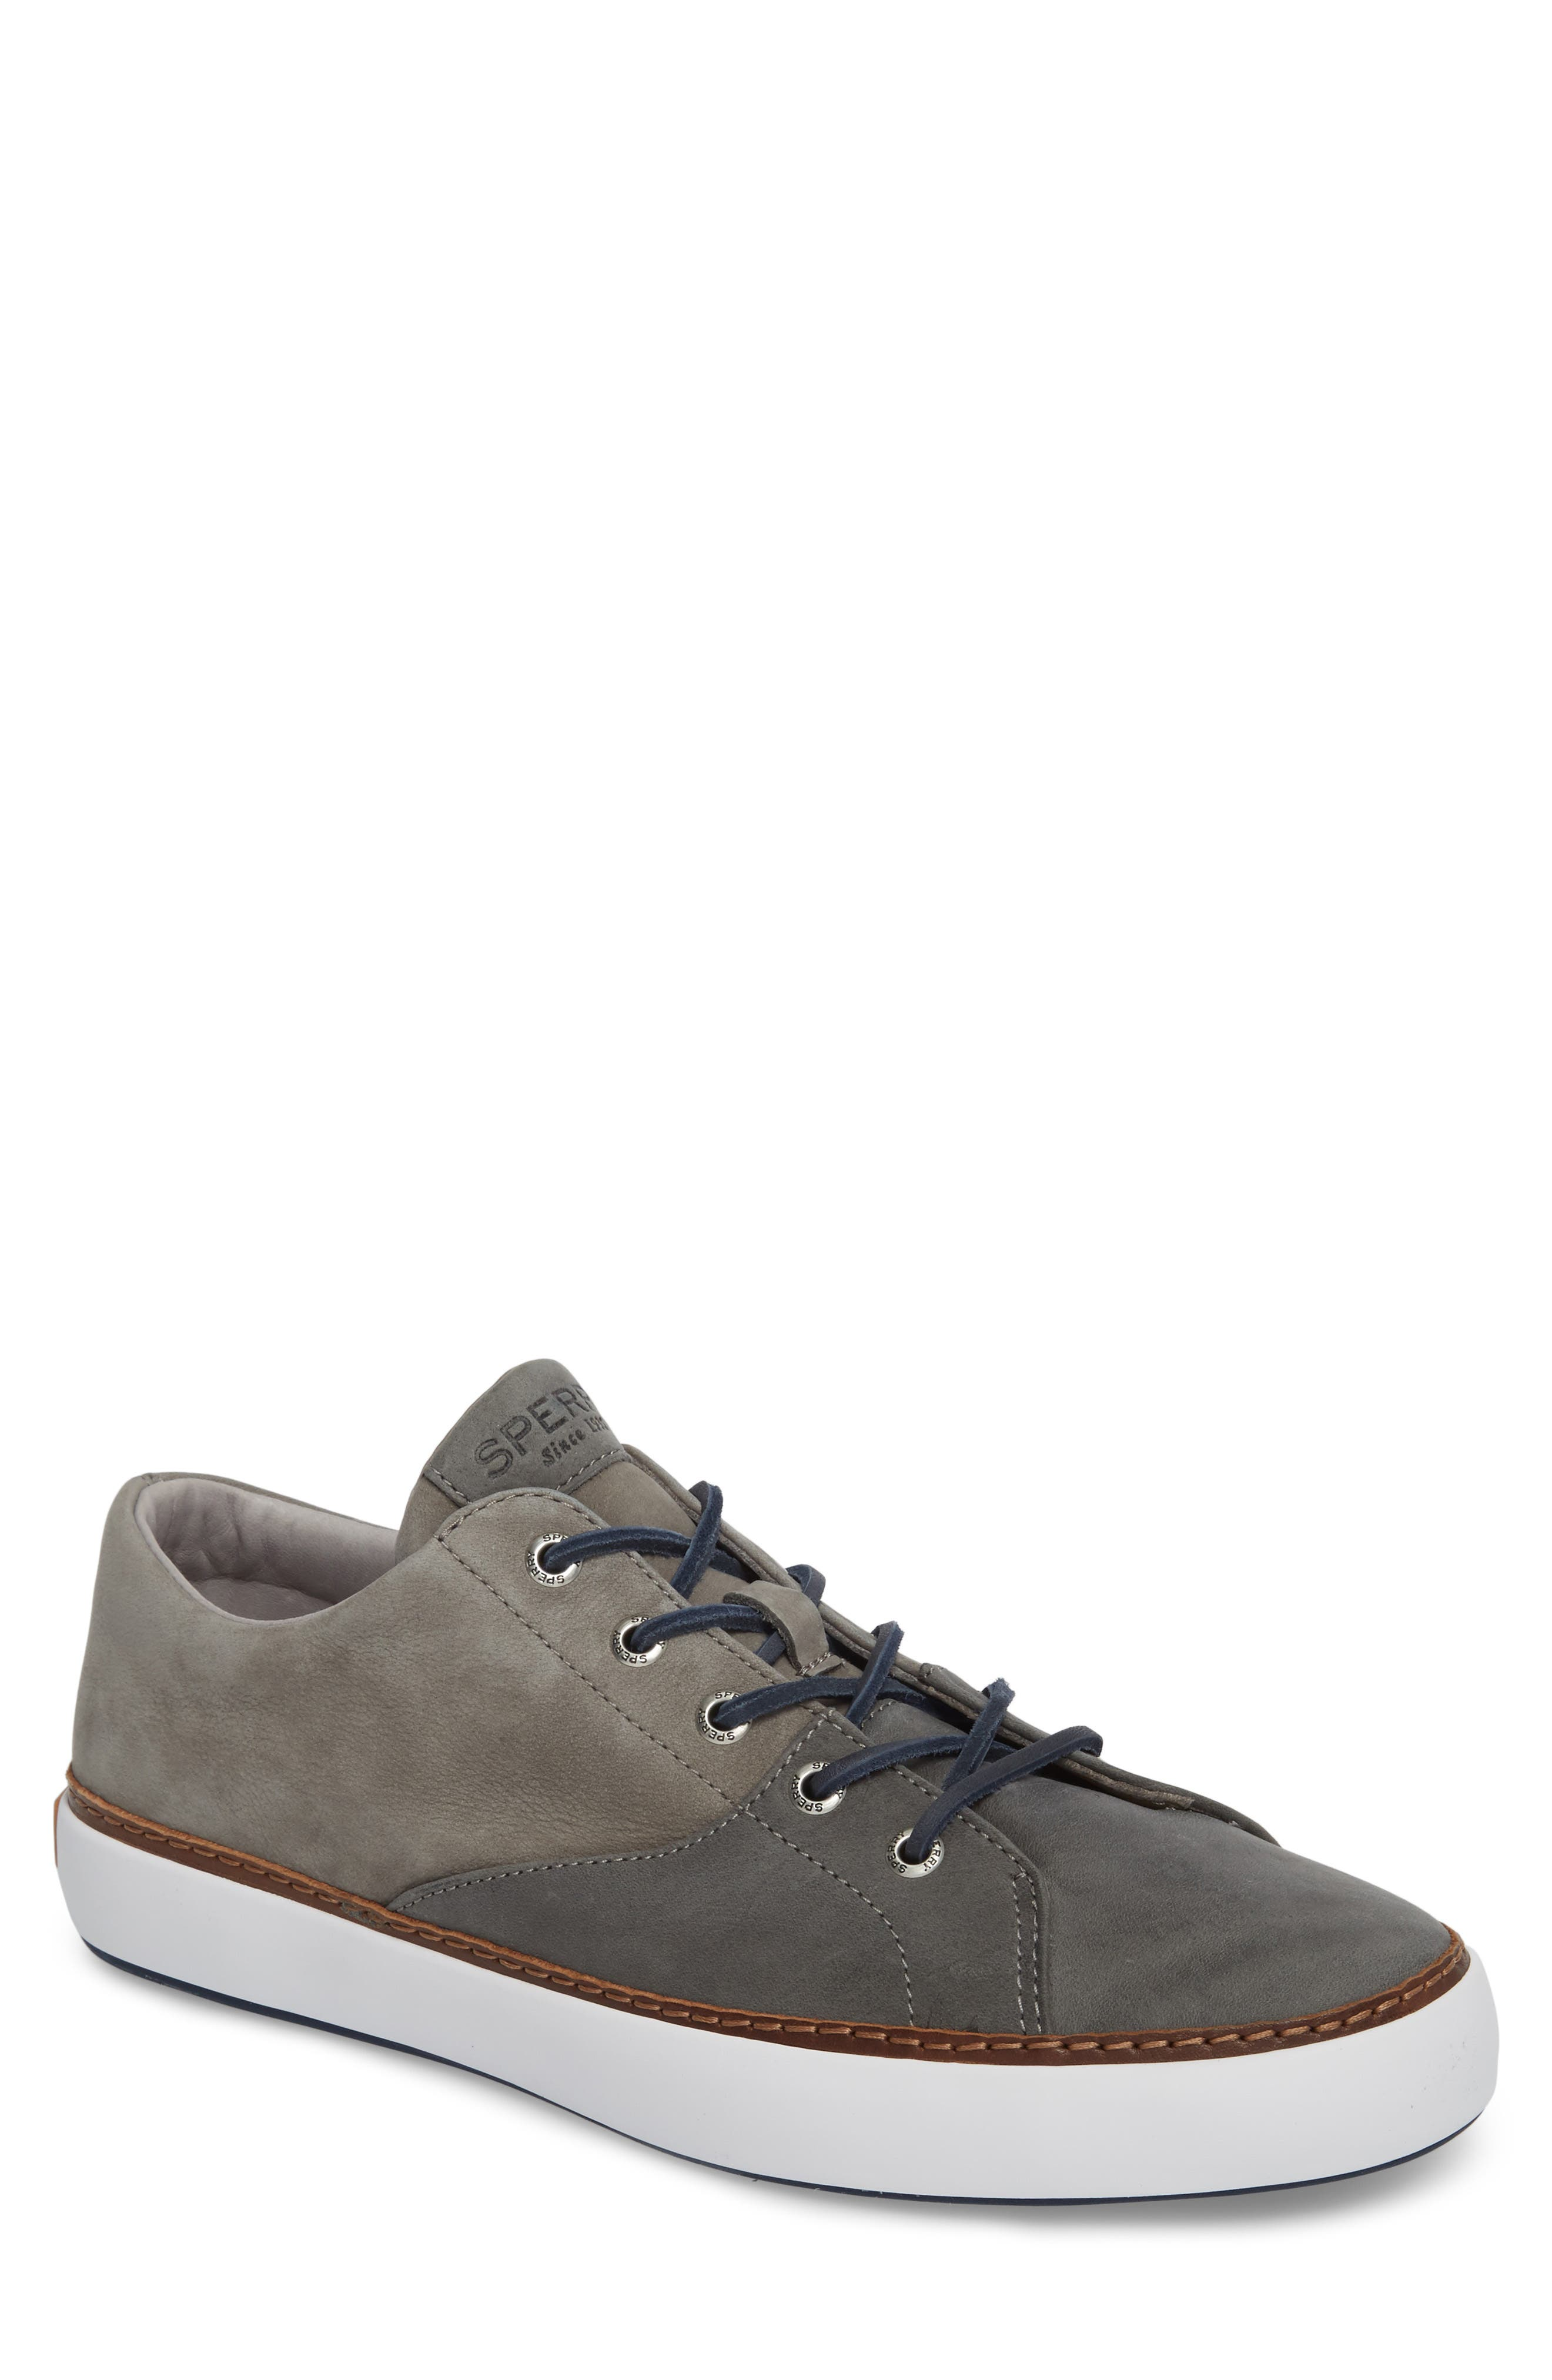 Sperry Gold Cup Haven Sneaker